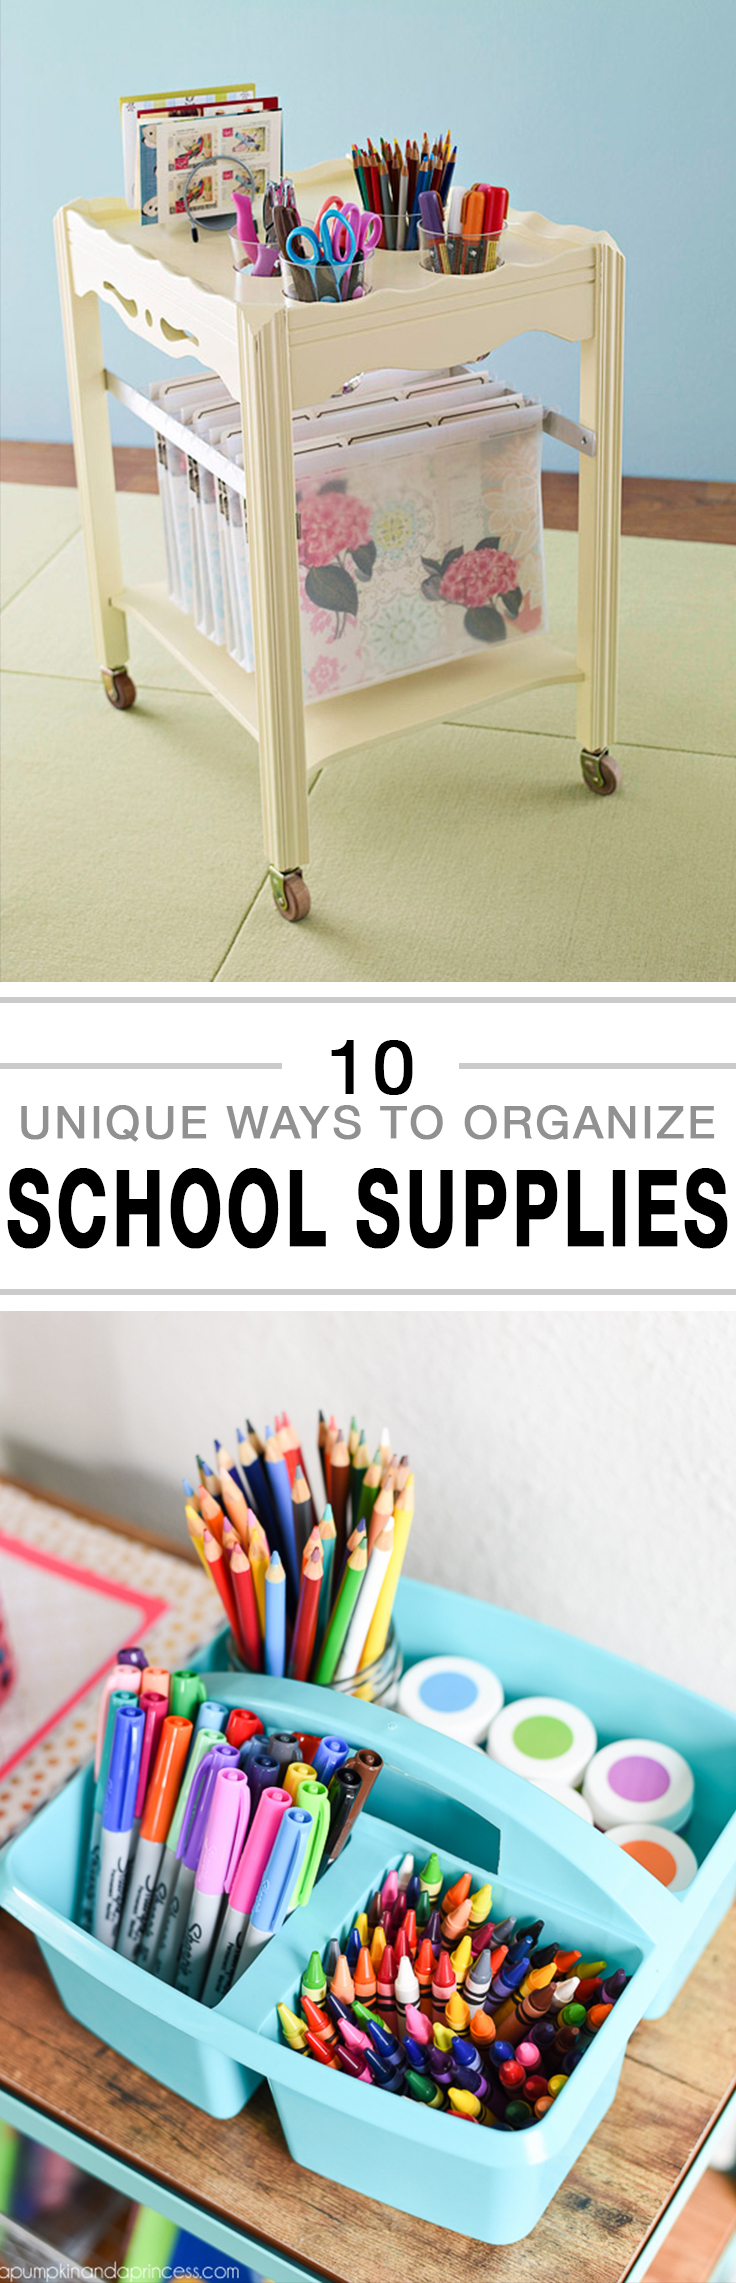 10 Unique Ways to Organize School Supplies